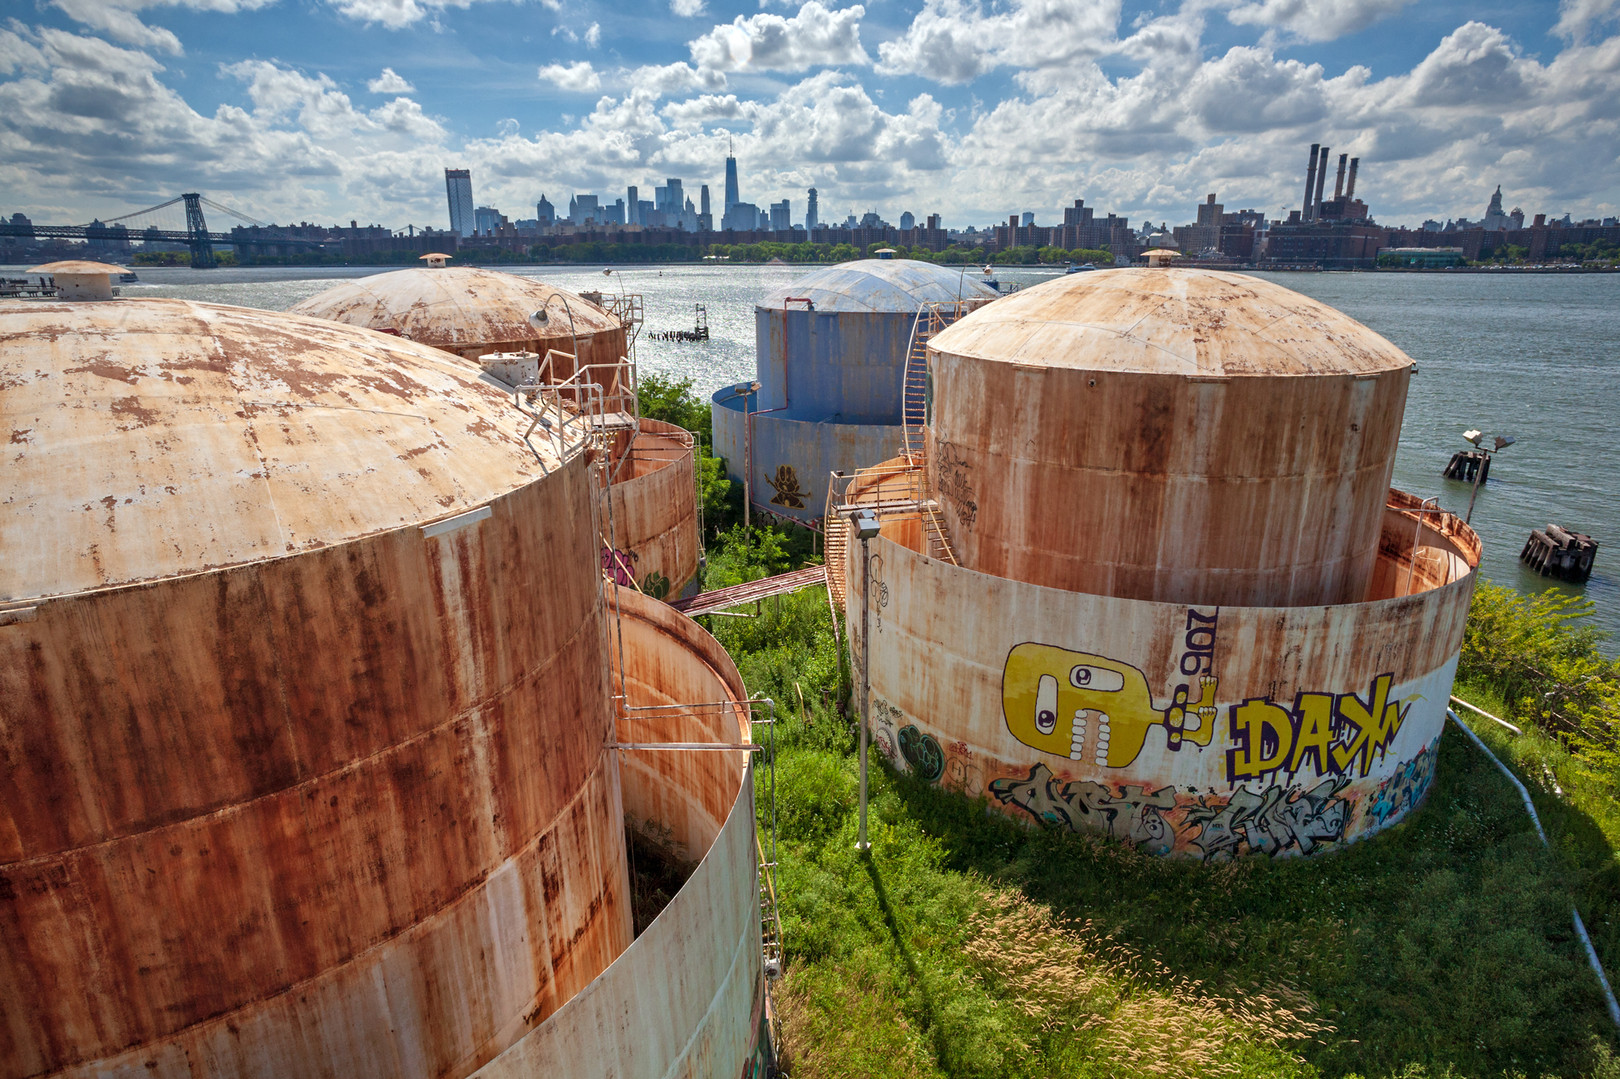 THE-TANKS-at-Bushwick-Inlet-Park-2.jpg